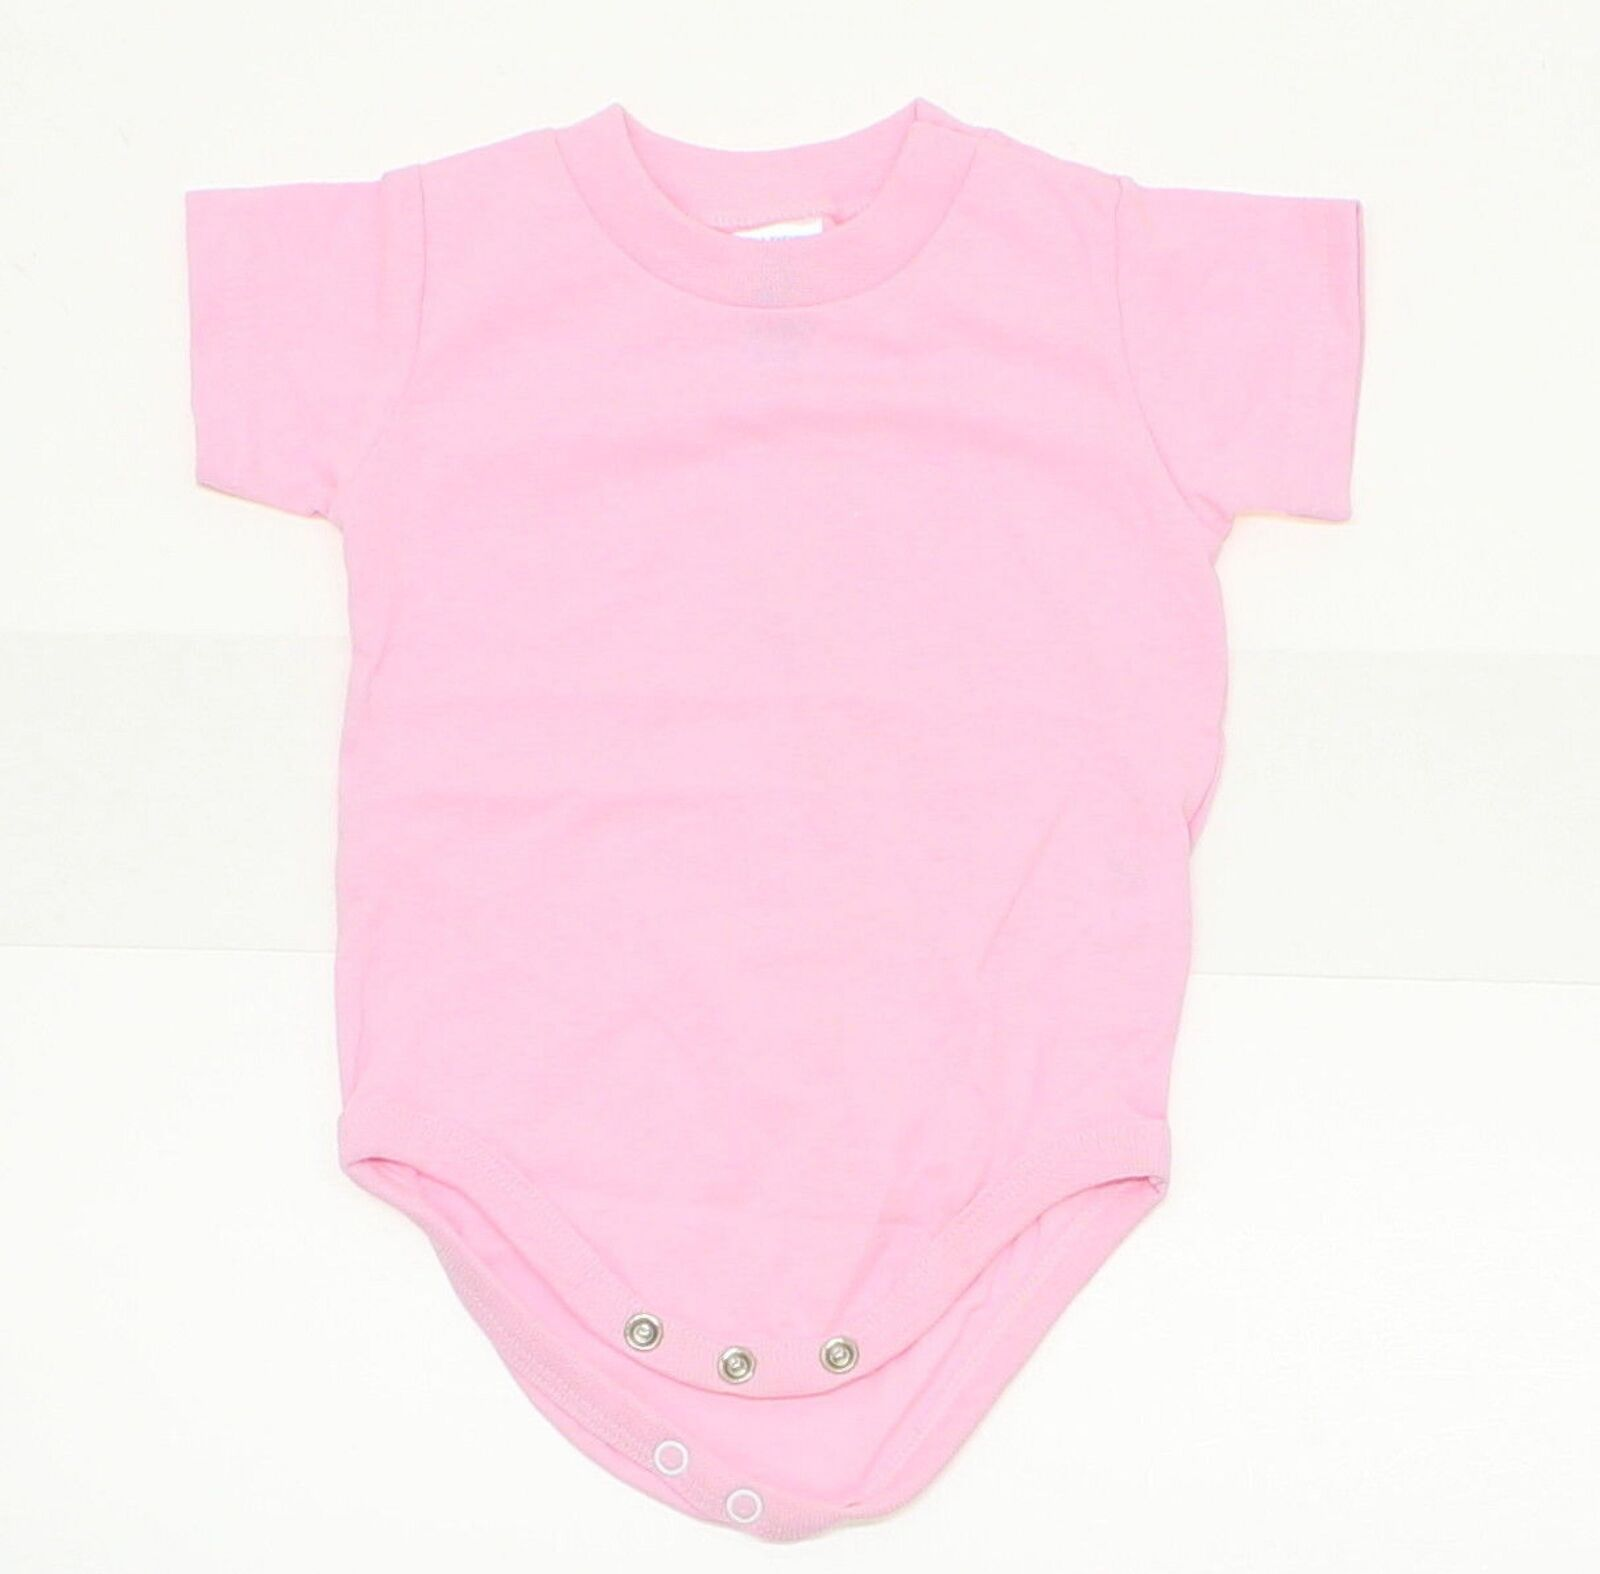 *NWT- GERBER 0-3M SIZES: NB BABY BOY/'S 3-PC ONESIZES BODYSUIT PACKAGE